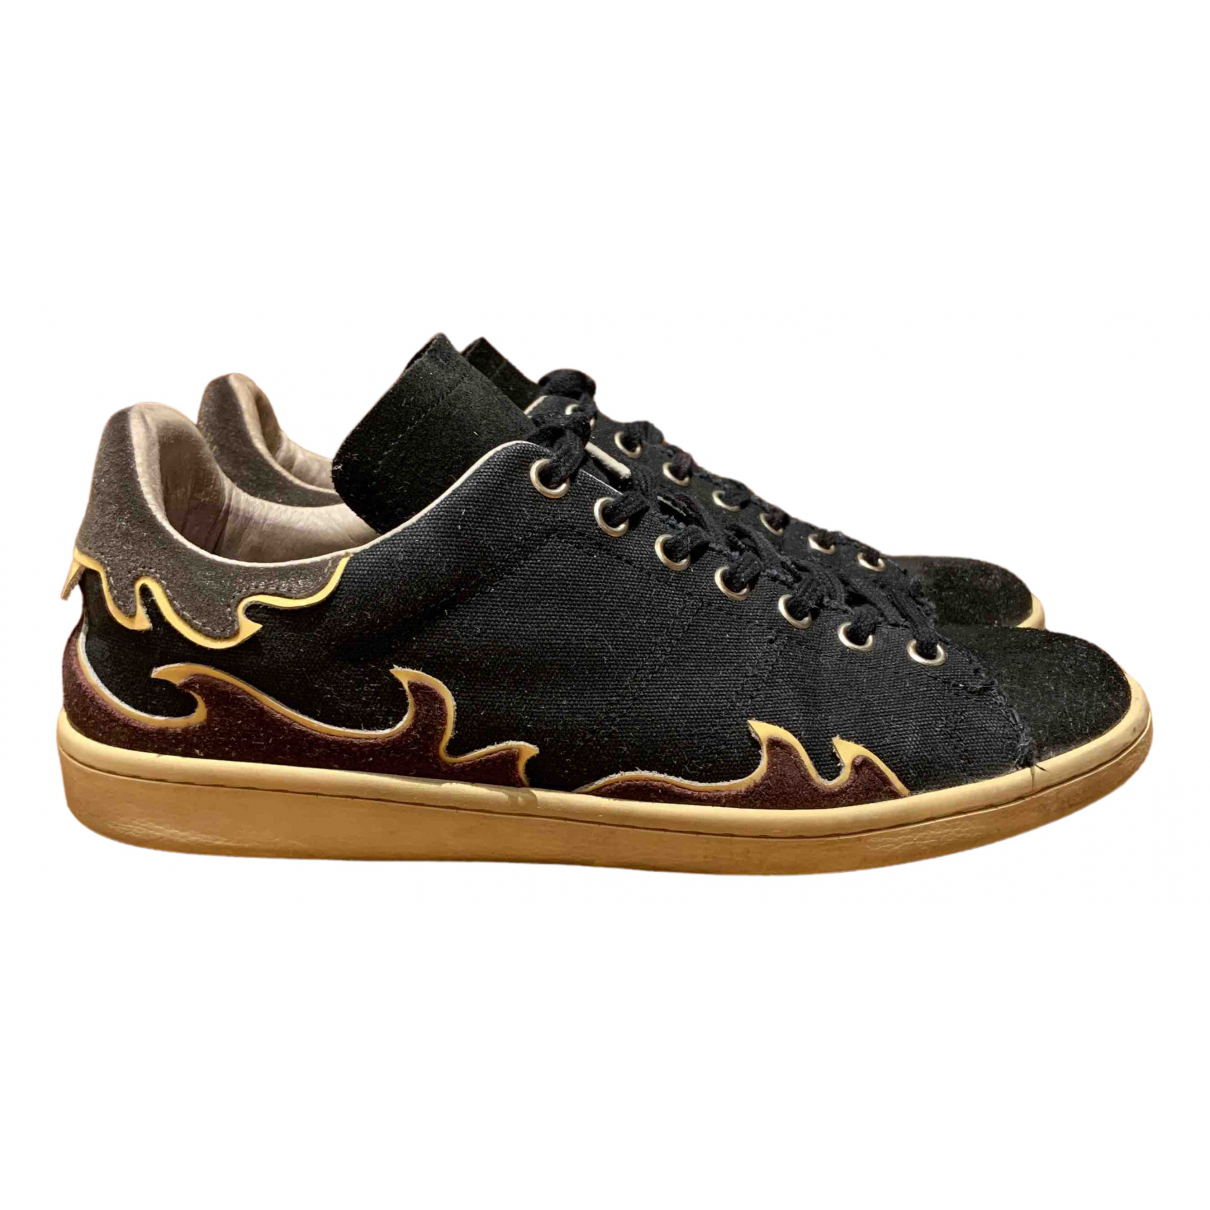 Isabel Marant N Black Suede Trainers for Women 39 EU